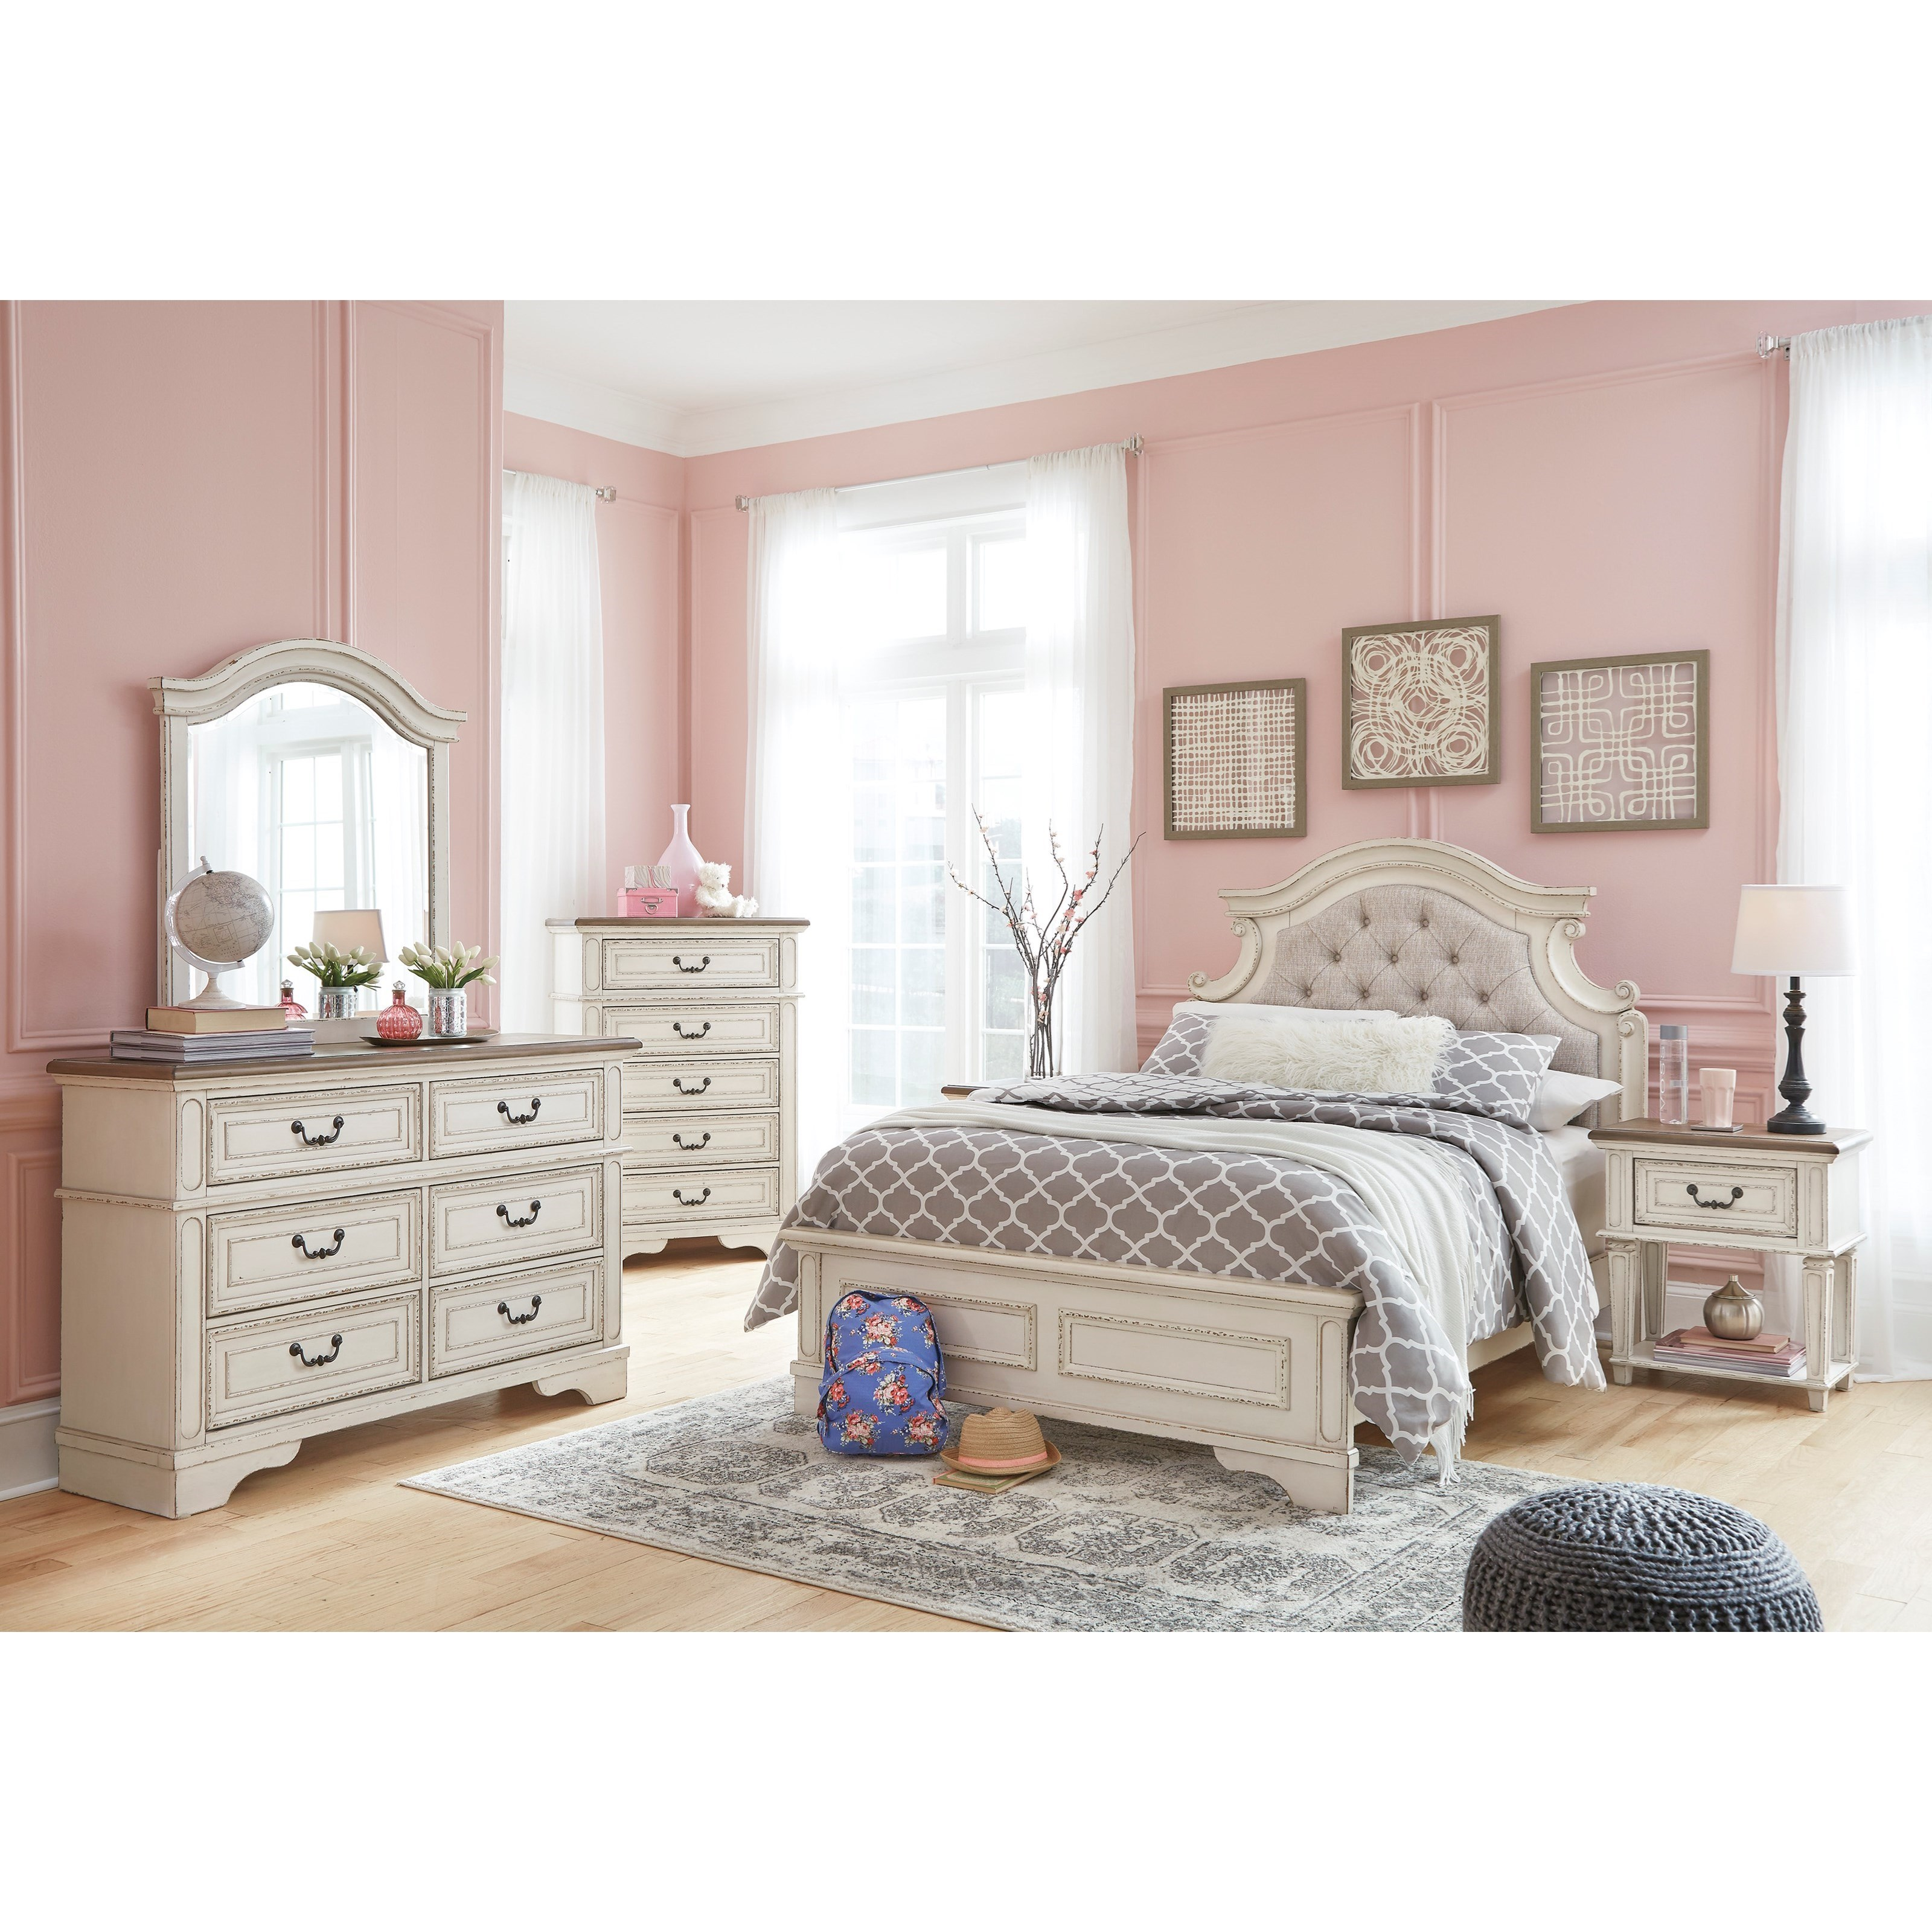 Signature design by ashley realyn full bedroom group - Ashley furniture full bedroom sets ...